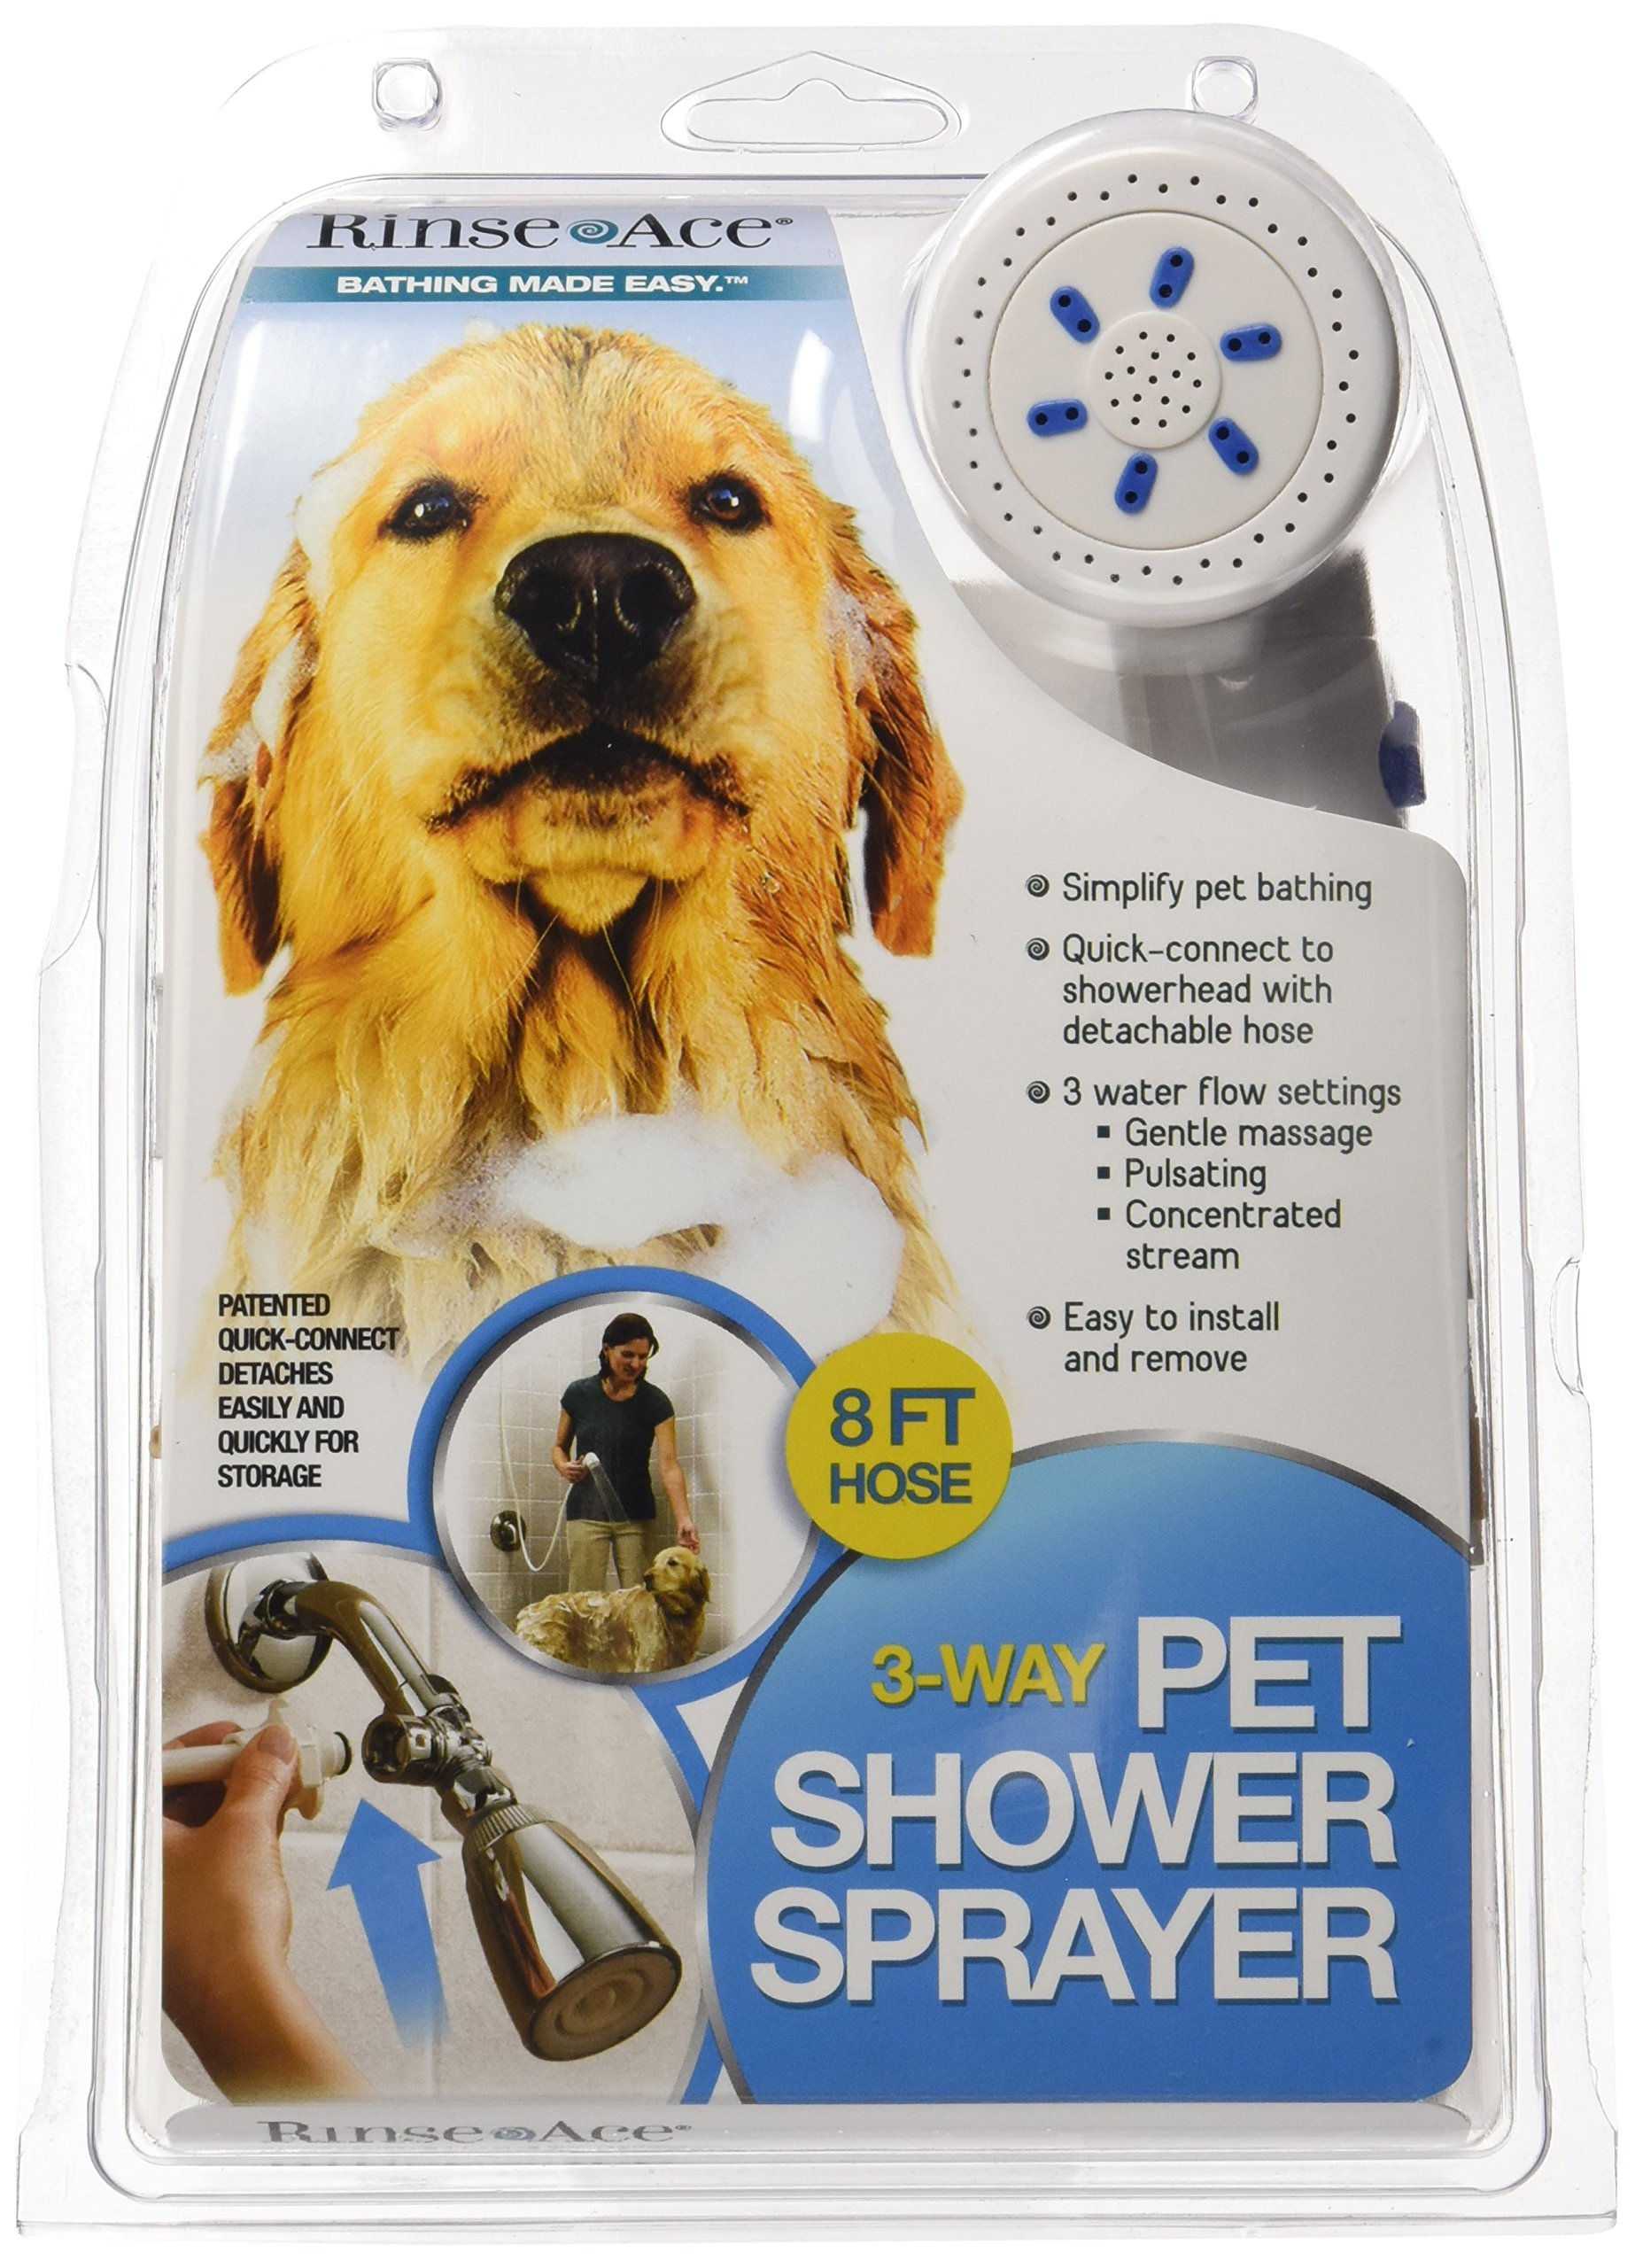 Rinse Ace 3 Way Pet Shower Sprayer with 8 Foot Hose and Quick Connect to Showerhead by Rinse Ace